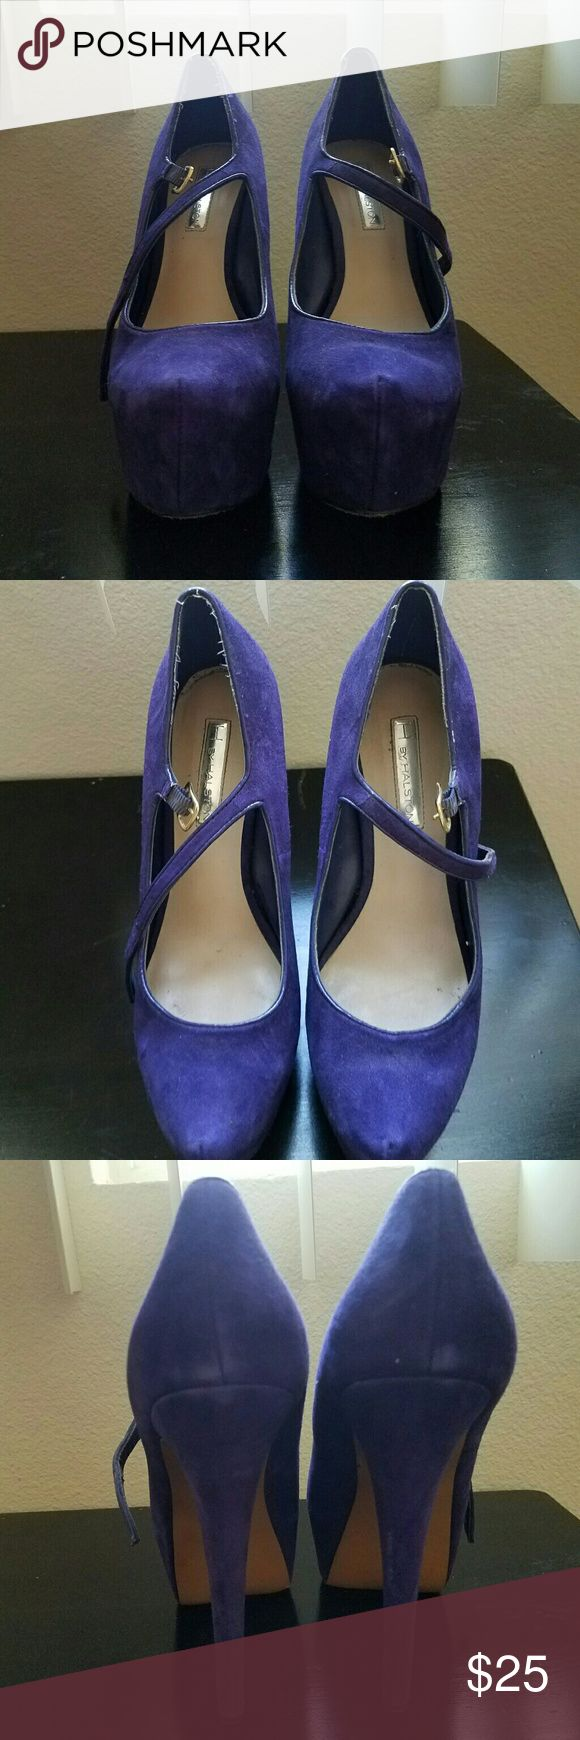 H by Halston High Heel Shoes Purple strappy high heel shoes, barely worn but super cute. H by Halston Shoes Heels